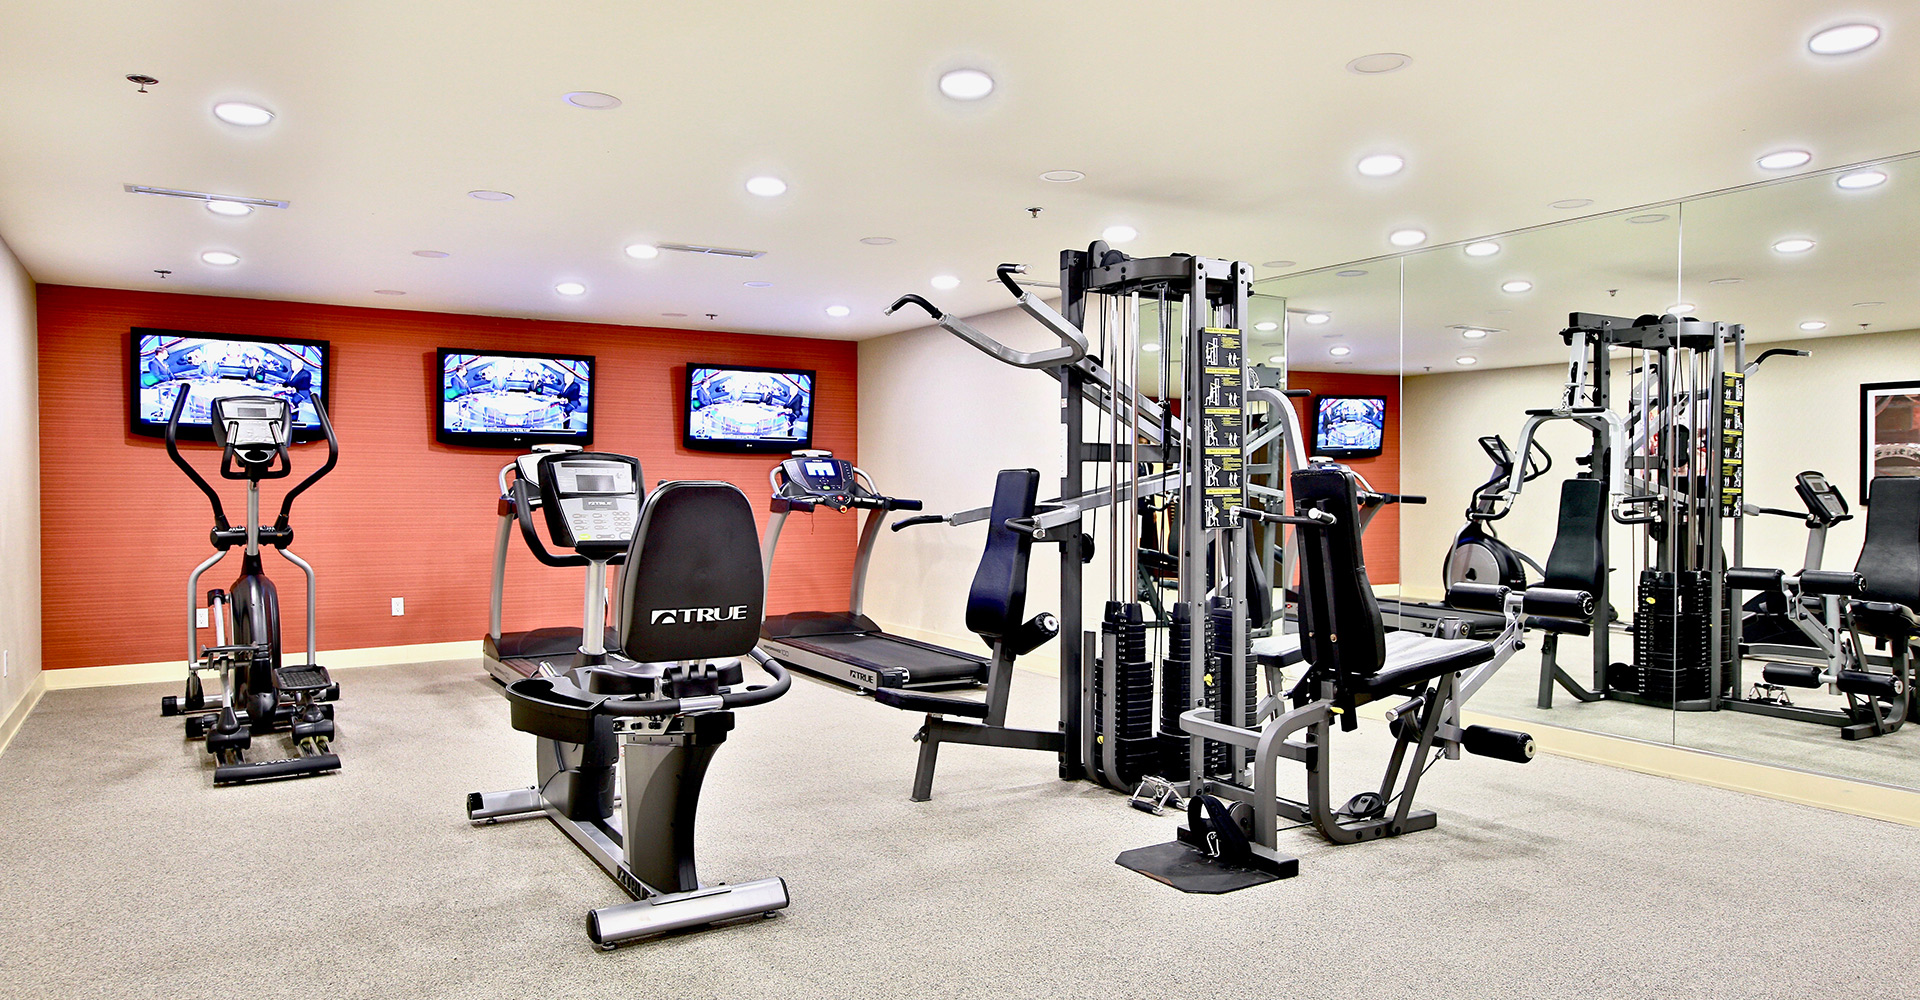 Best Western Plus Hotel Europa Montreal Gym